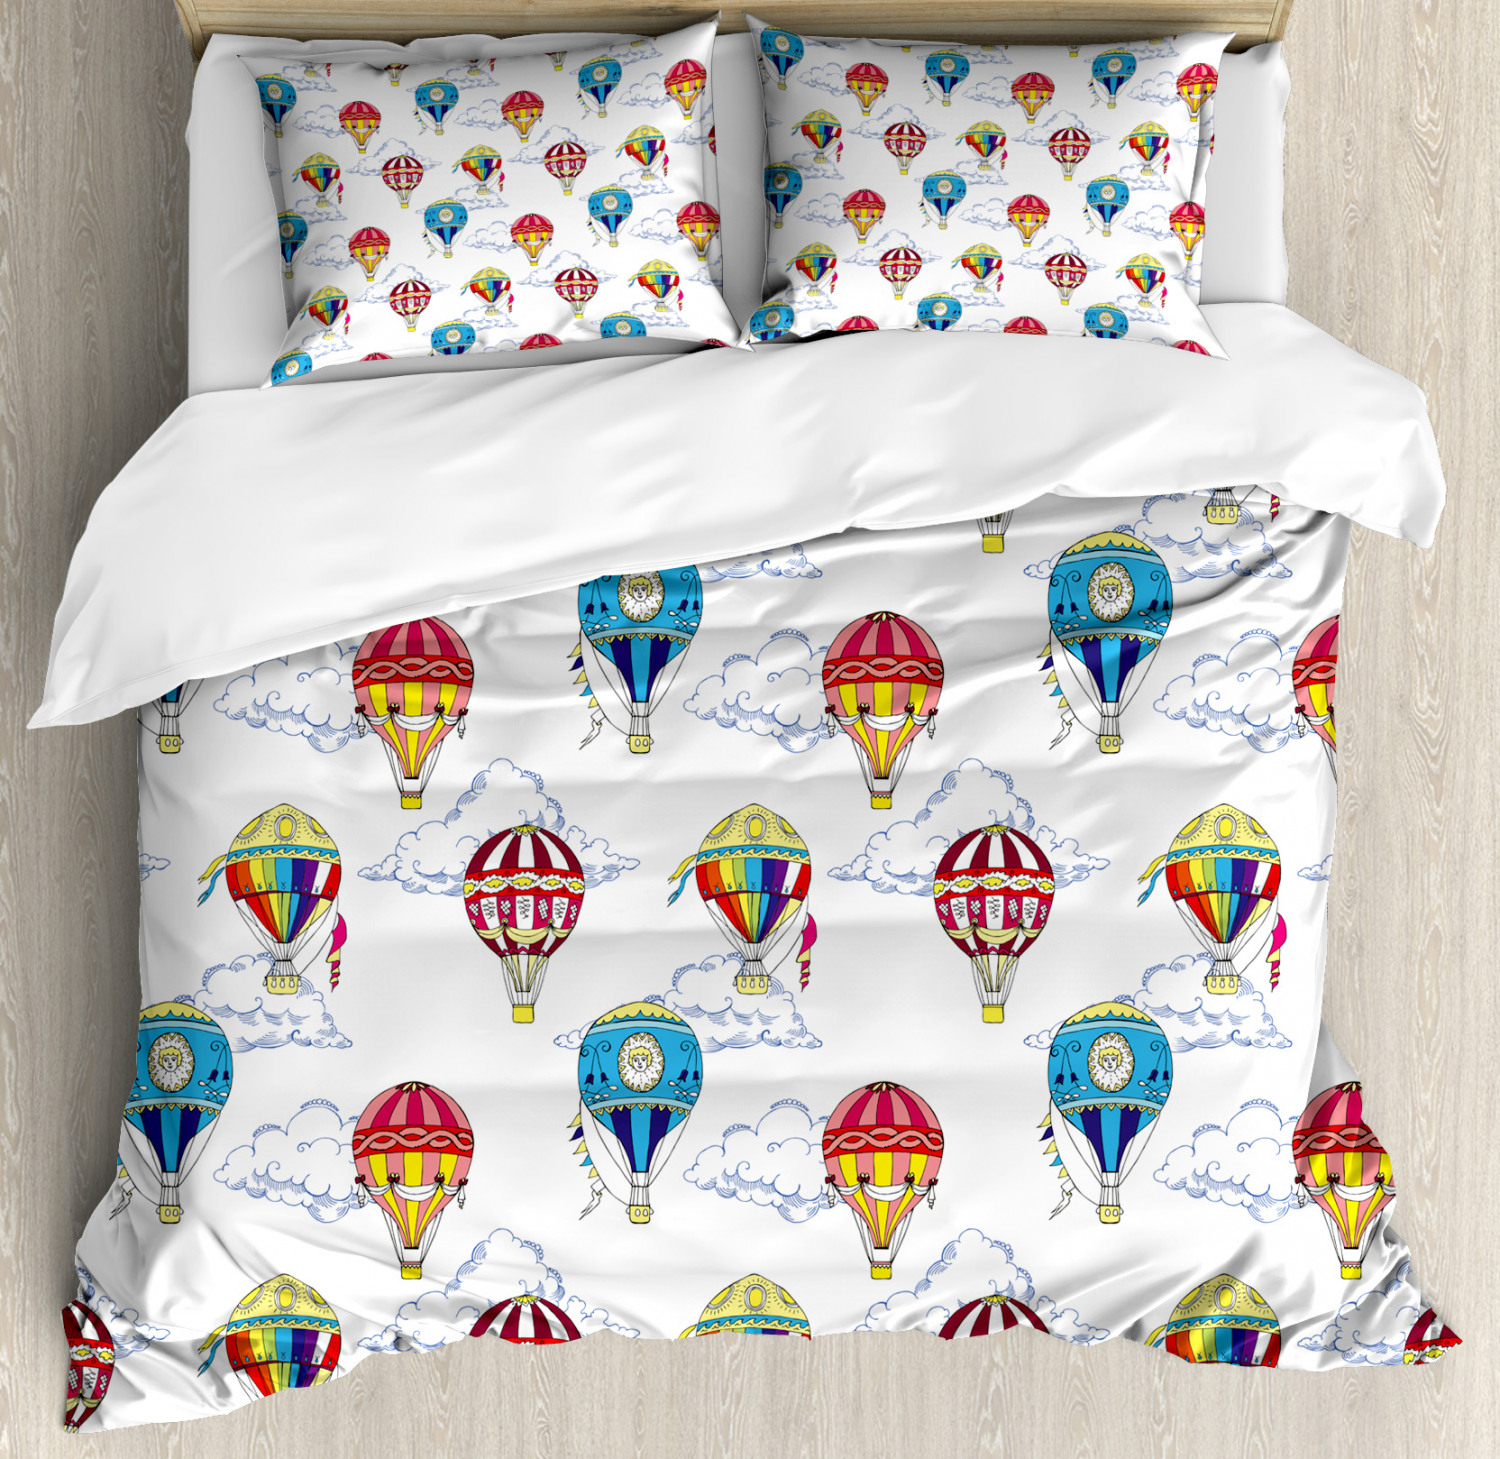 Vintage Duvet Cover Set with Pillow Shams Clouds Hot Air Balloons Print